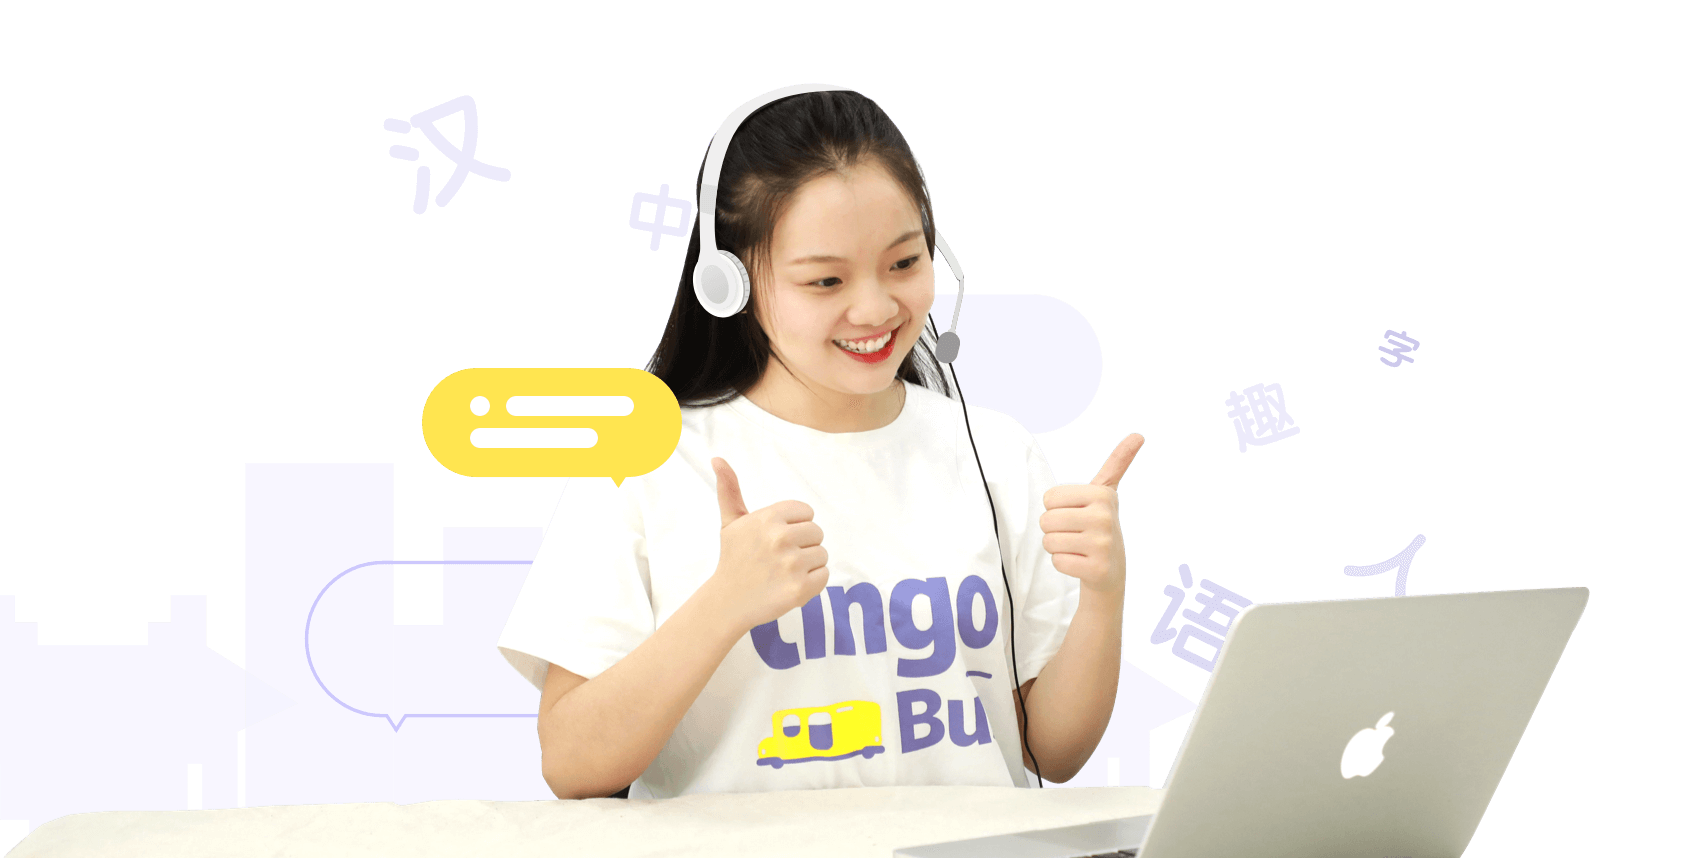 Learn mandarin chinese online free for kids